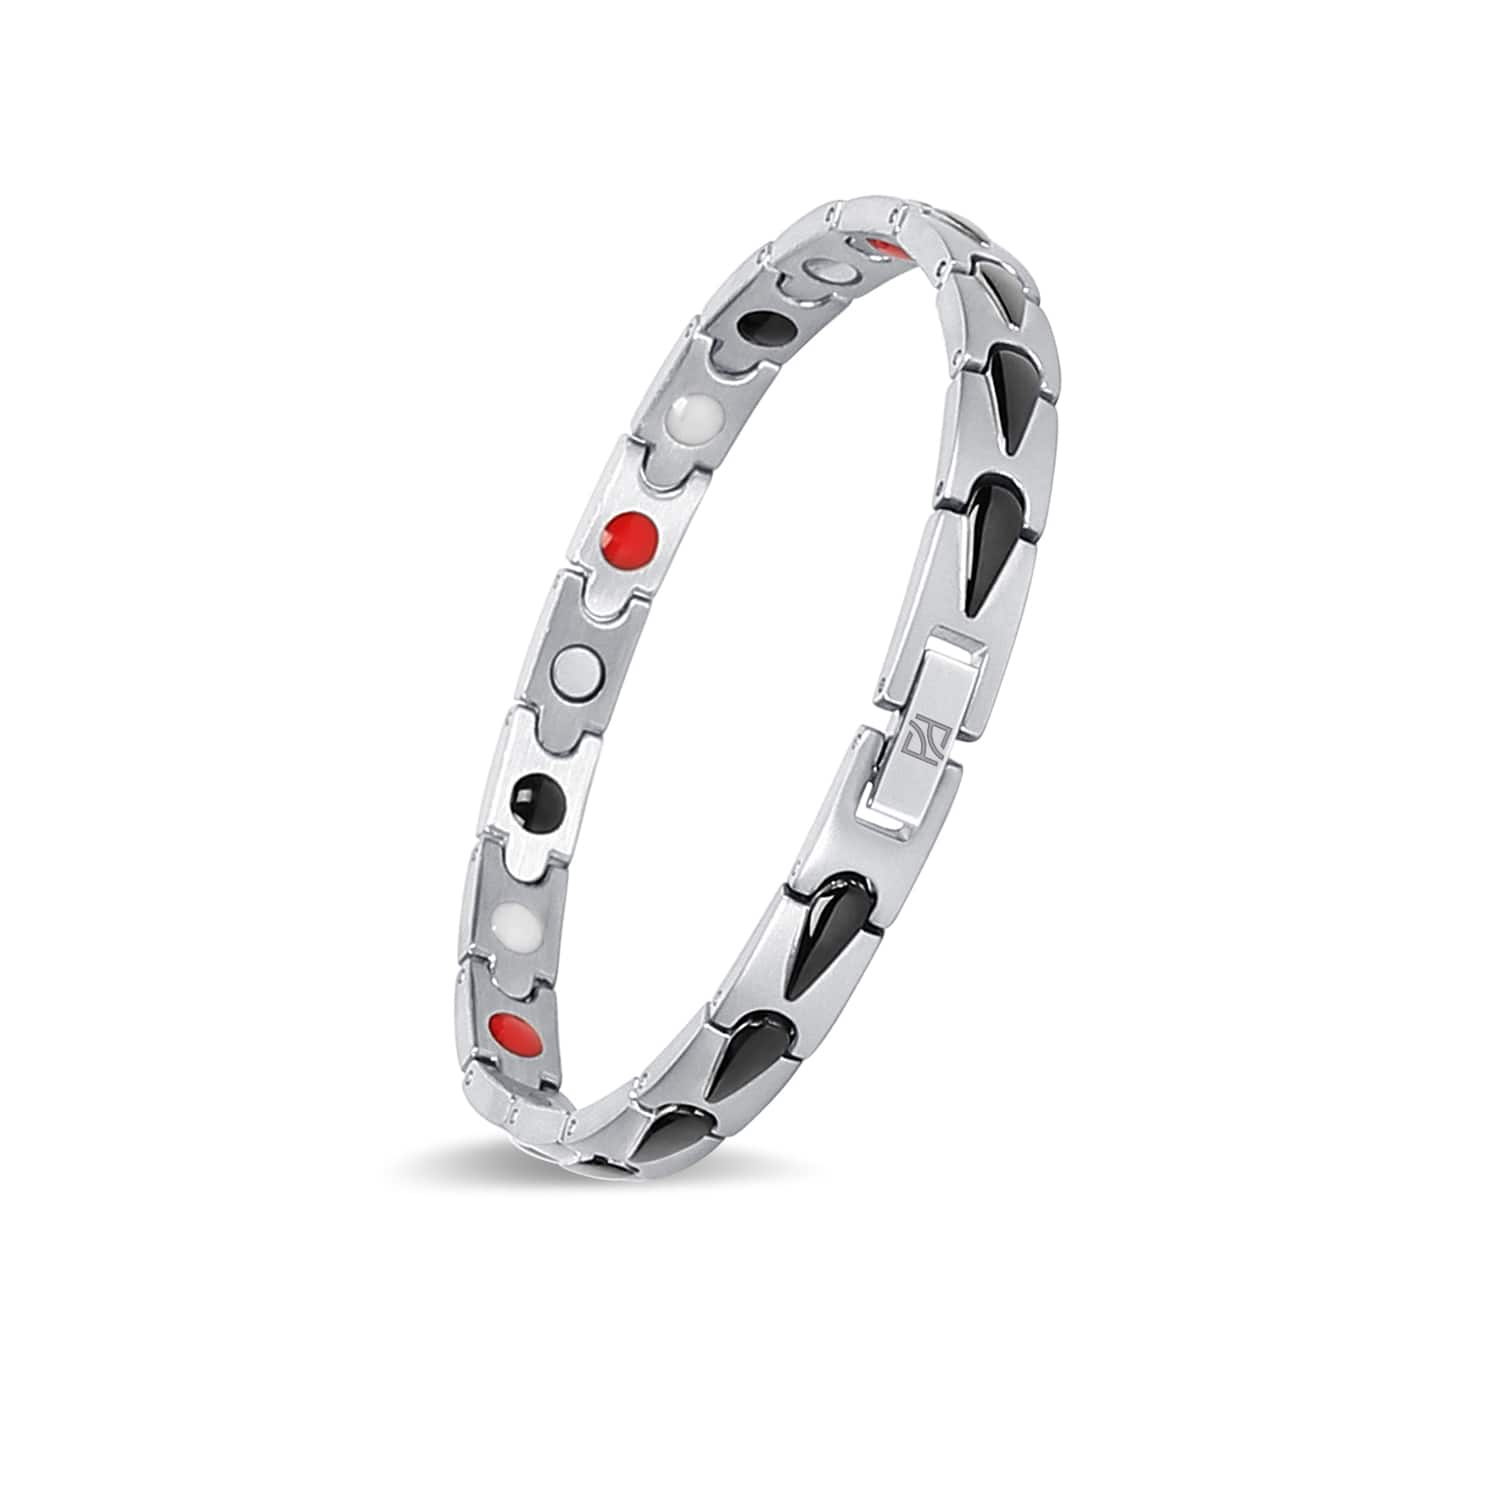 Fashion Titanium Magnetic Therapy Bracelet Pain Relief for Arthritis and Carpal Tunnel Girl for Elegant Women 80% OFF @$7.99+FS